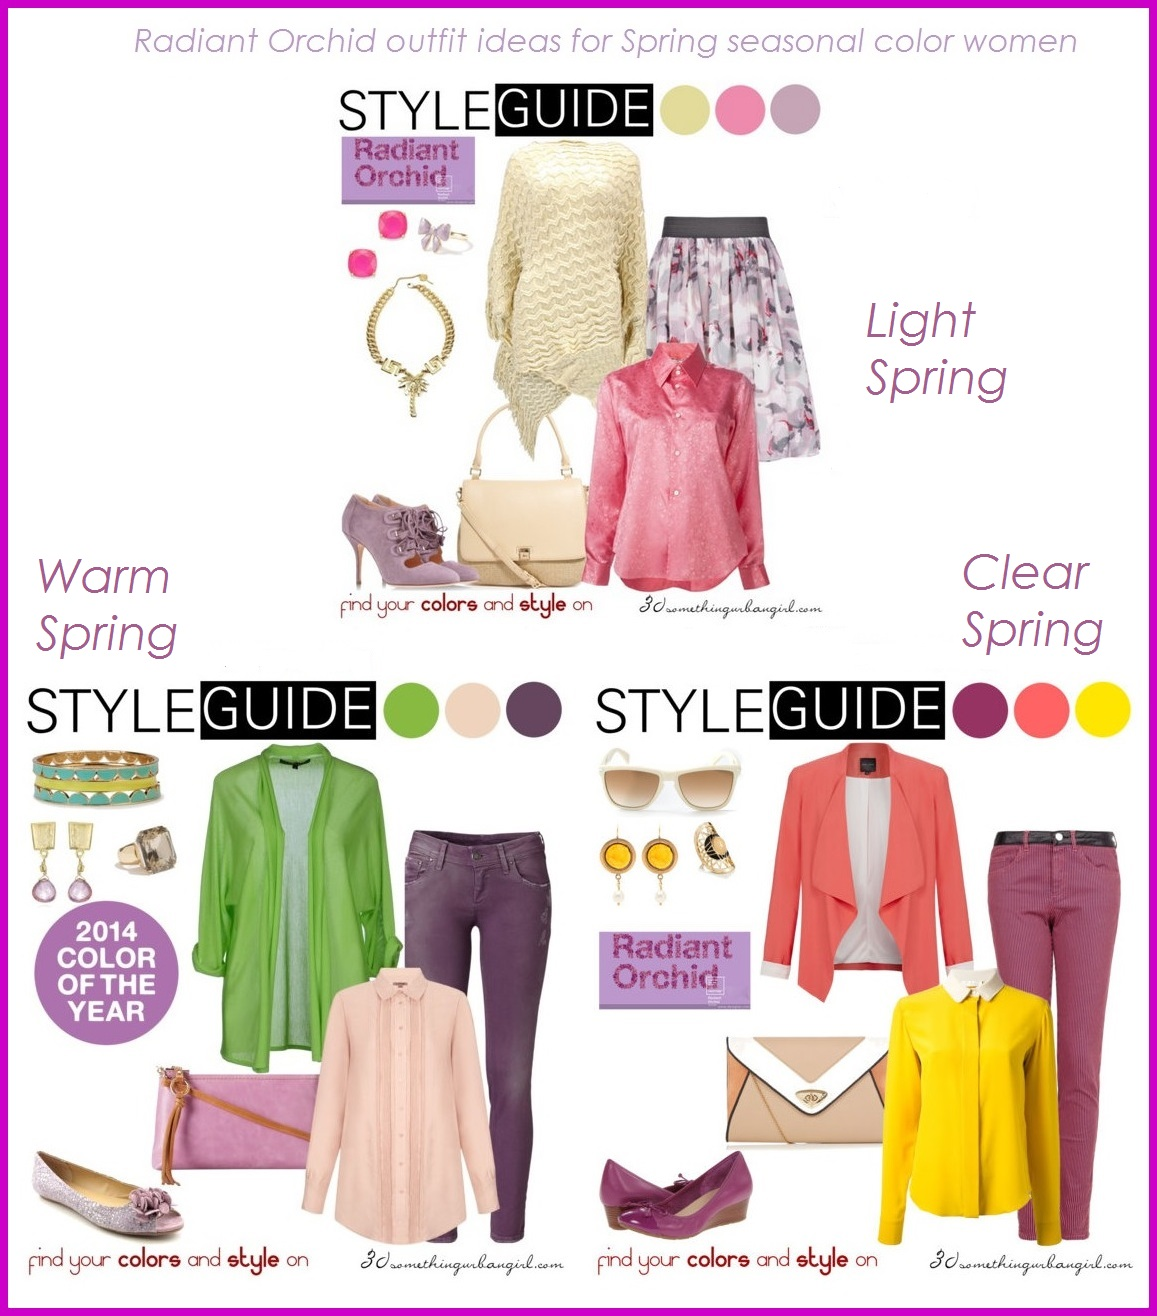 Radiant Orchid outfit ideas for Spring seasonal color women